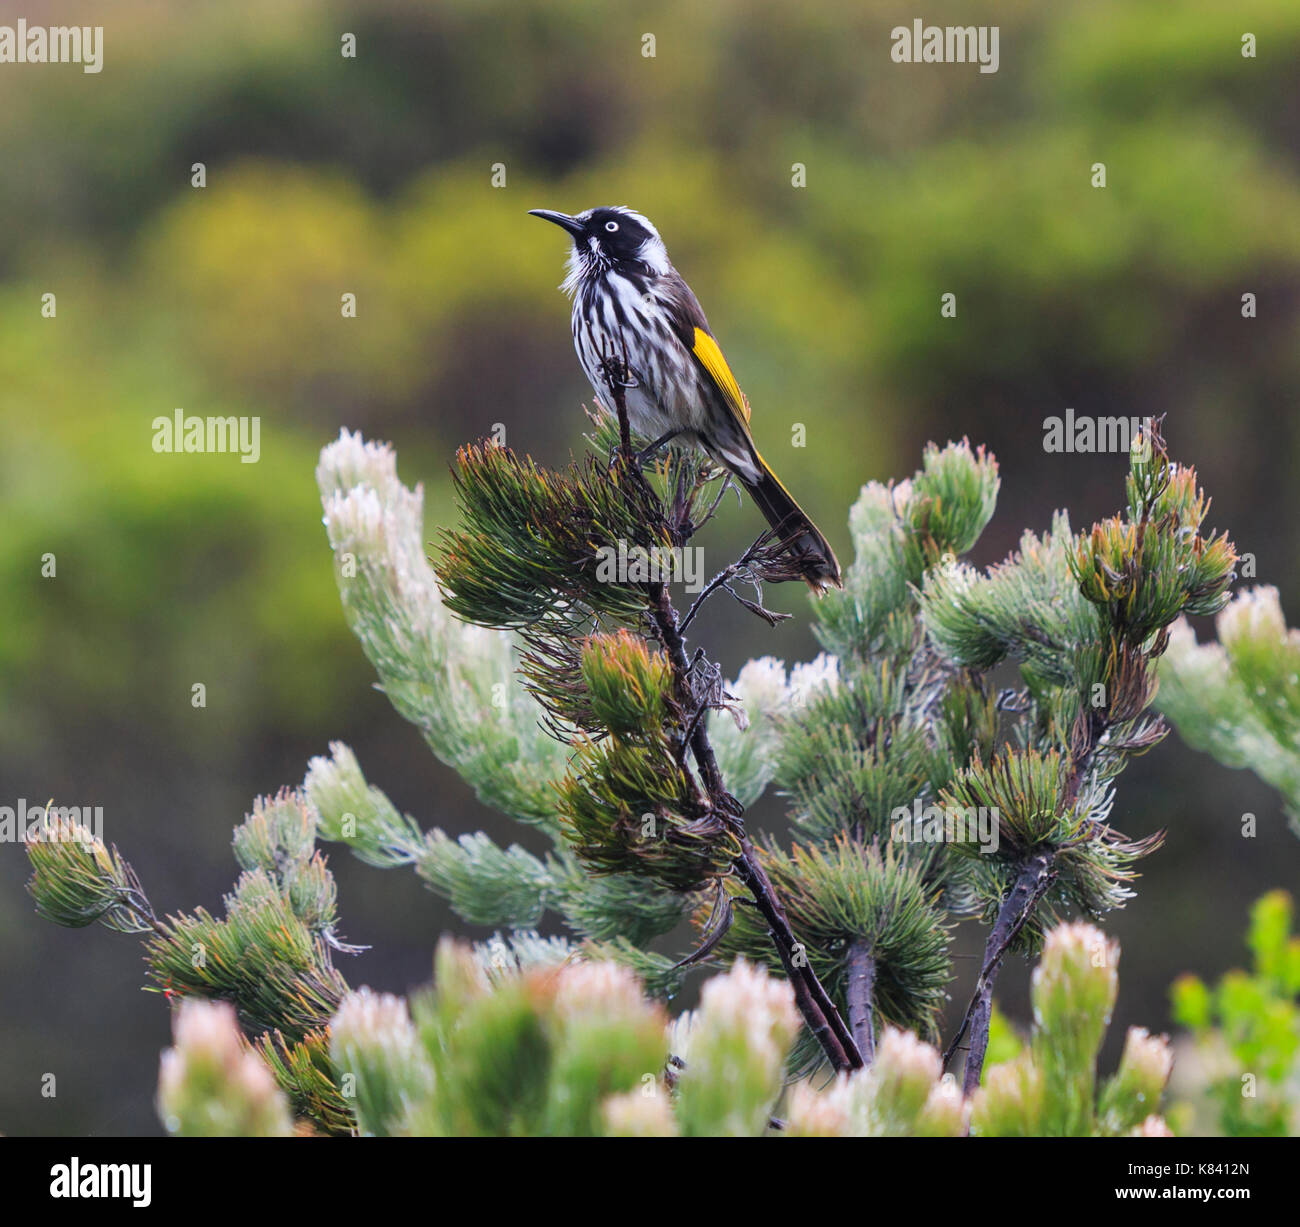 A New Holland Honeyeater (Phylidonyris novaehollandiae) perched on an Albany wooly bush plant - Stock Image